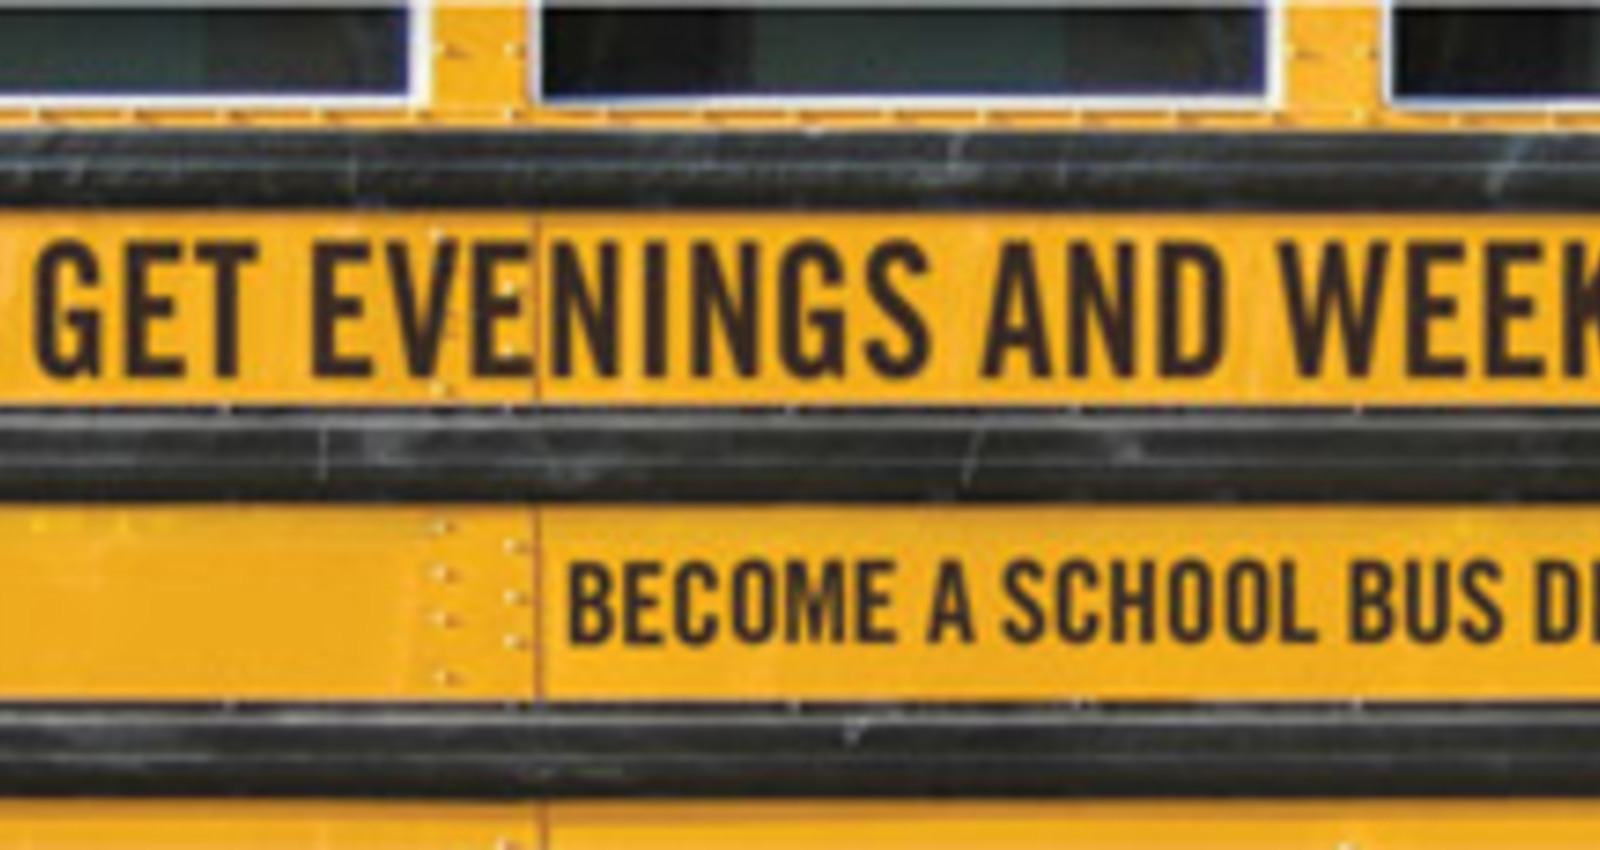 Become a school bus driver.